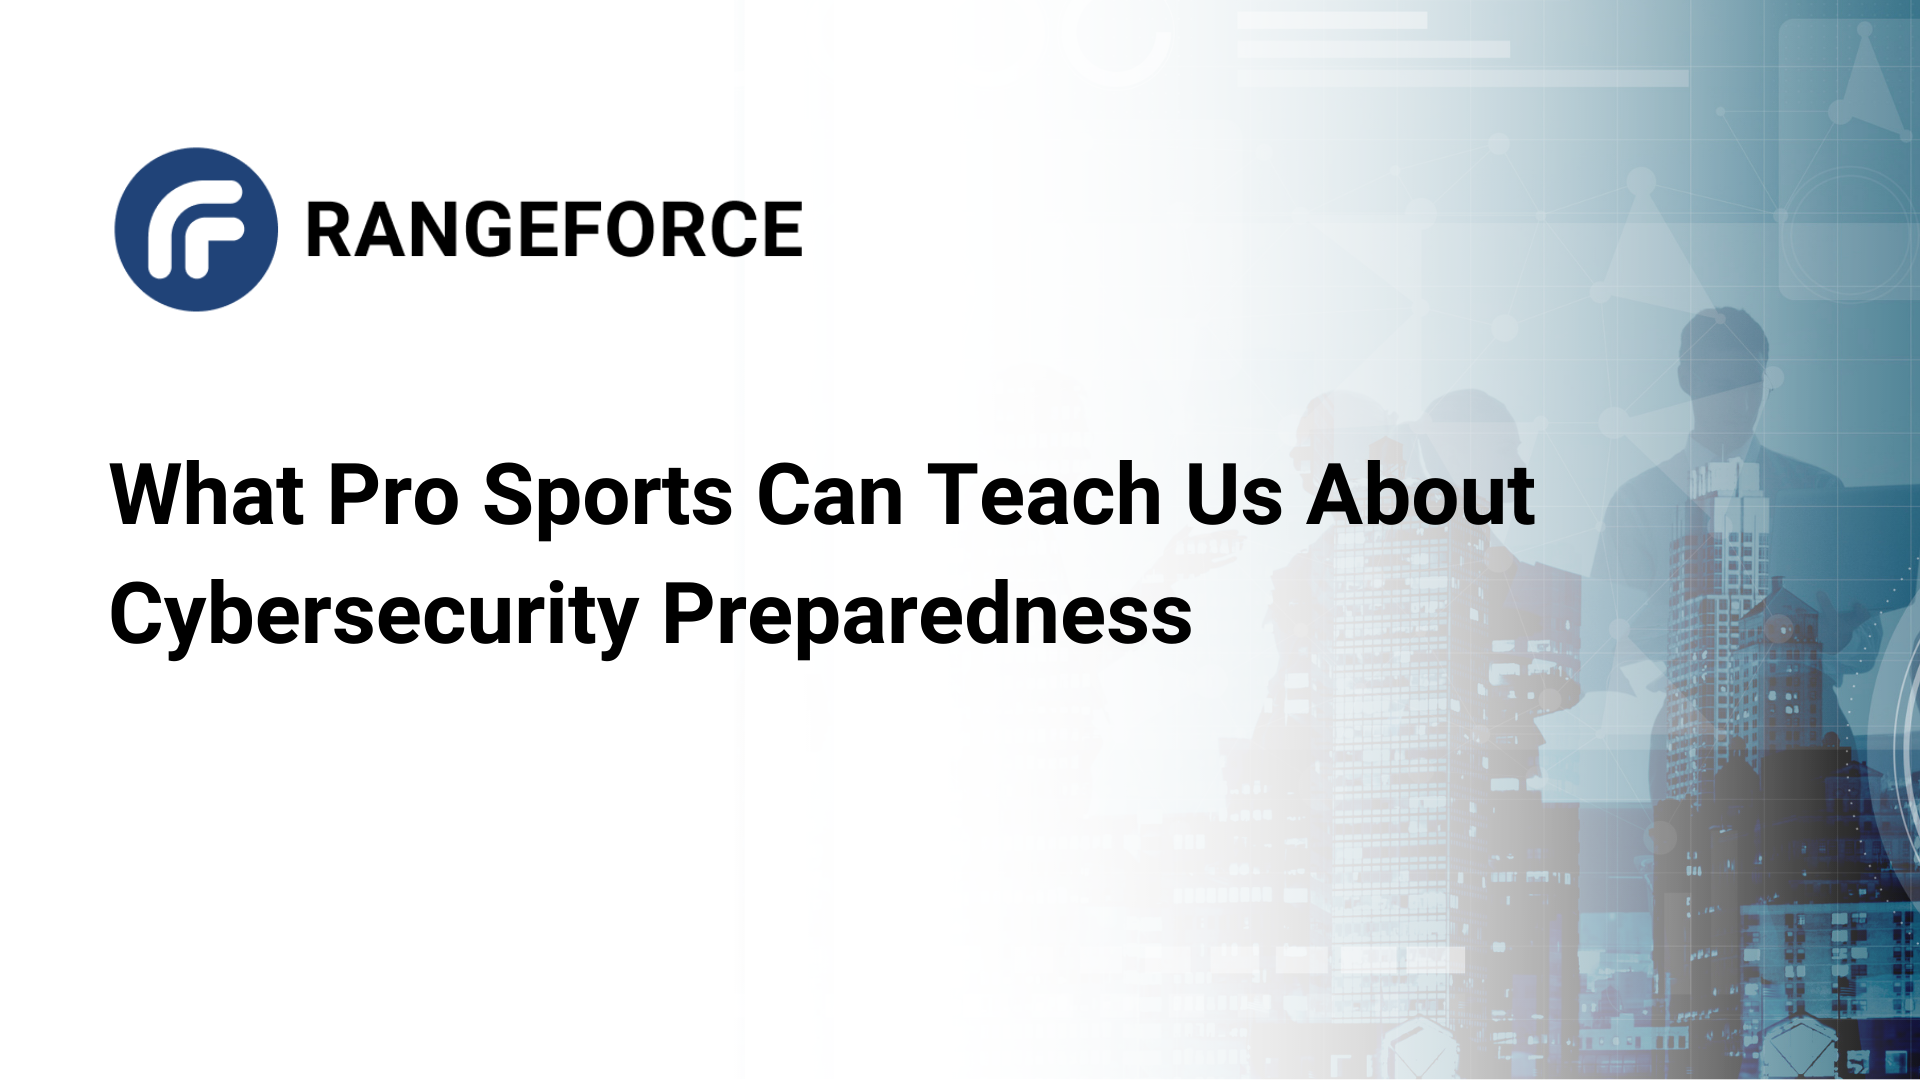 cybersecurity training and preparedness